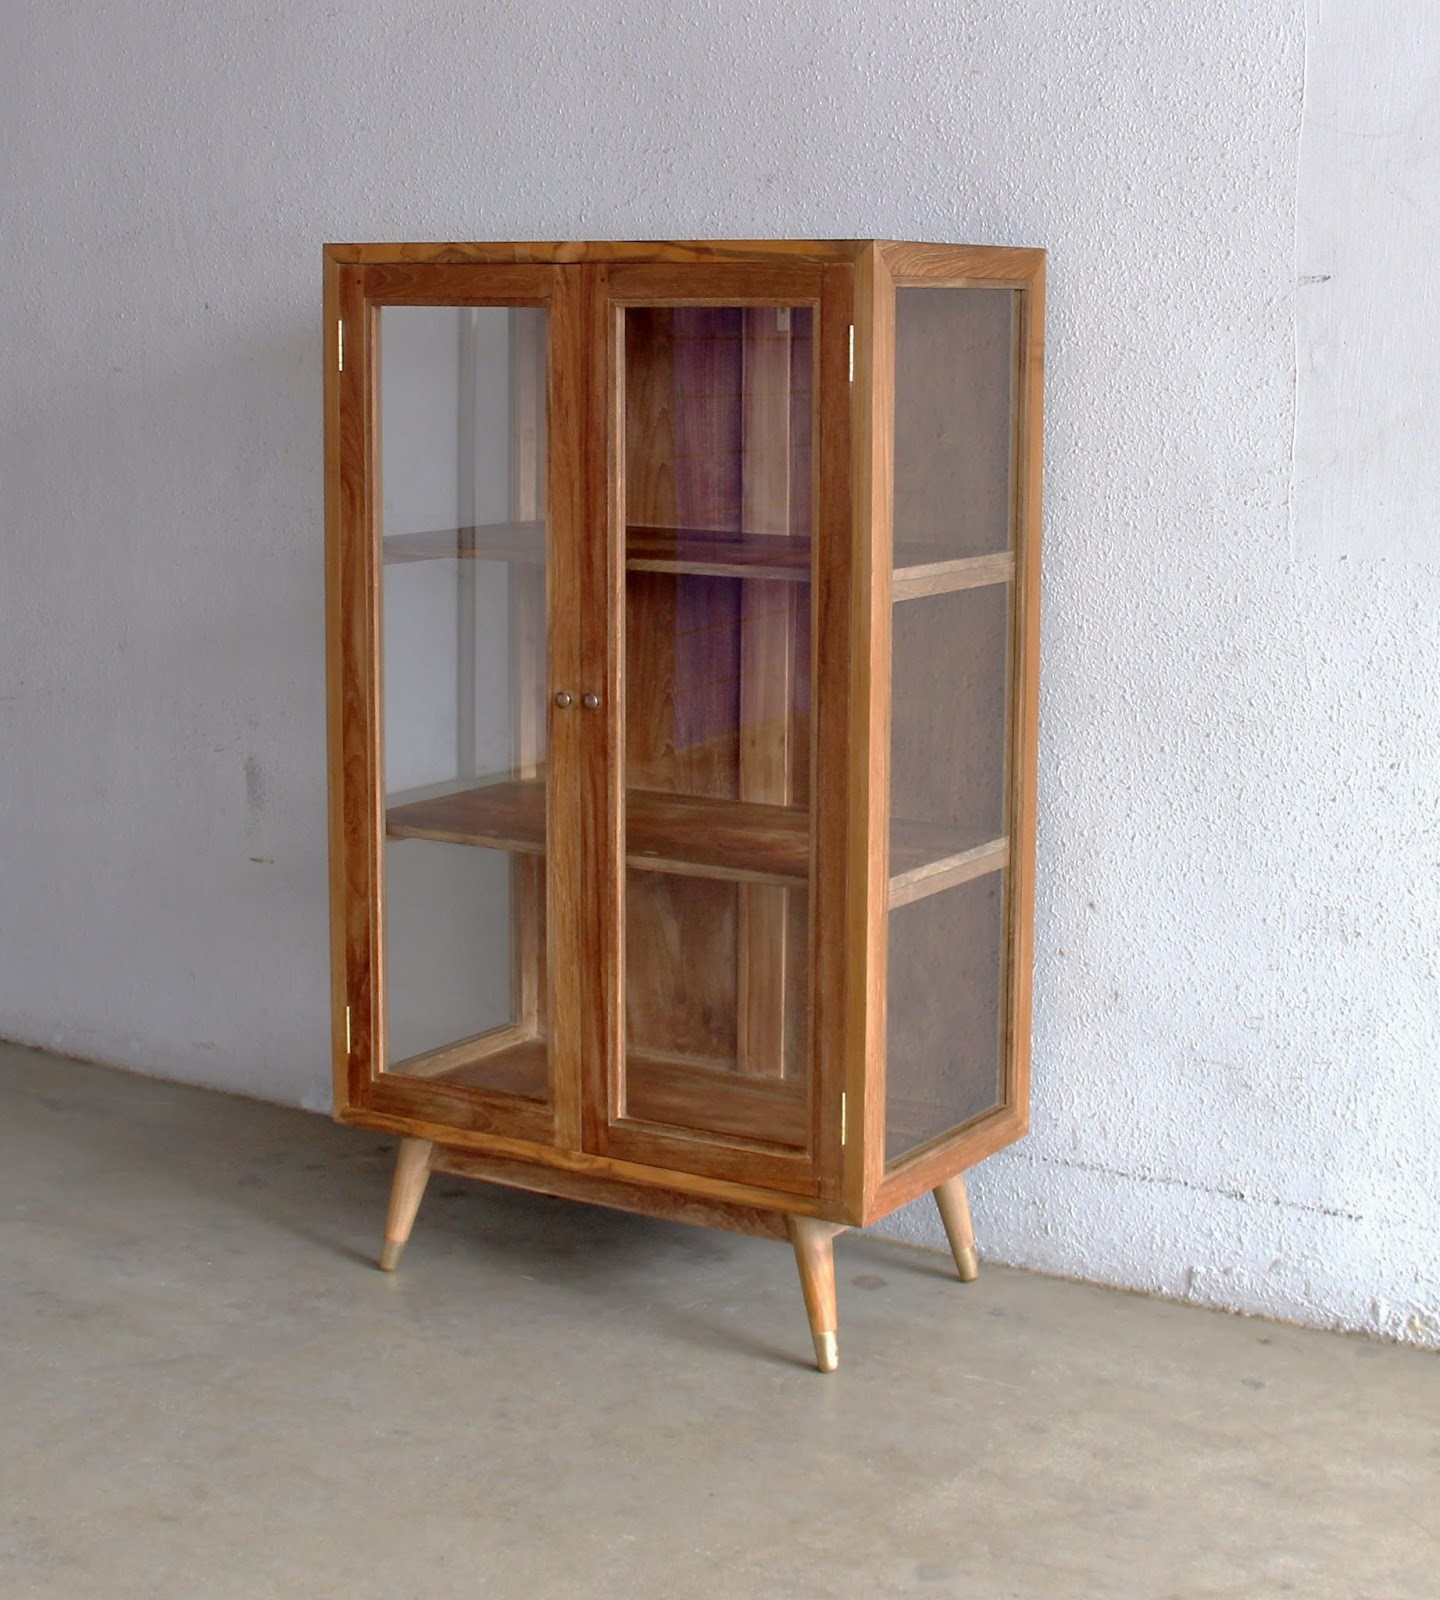 SECOND CHARM FURNITURE - VINTAGE STYLE SHOWCASES - SECOND CHARM FURNITURE - VINTAGE STYLE SHOWCASES Bobs Furniture